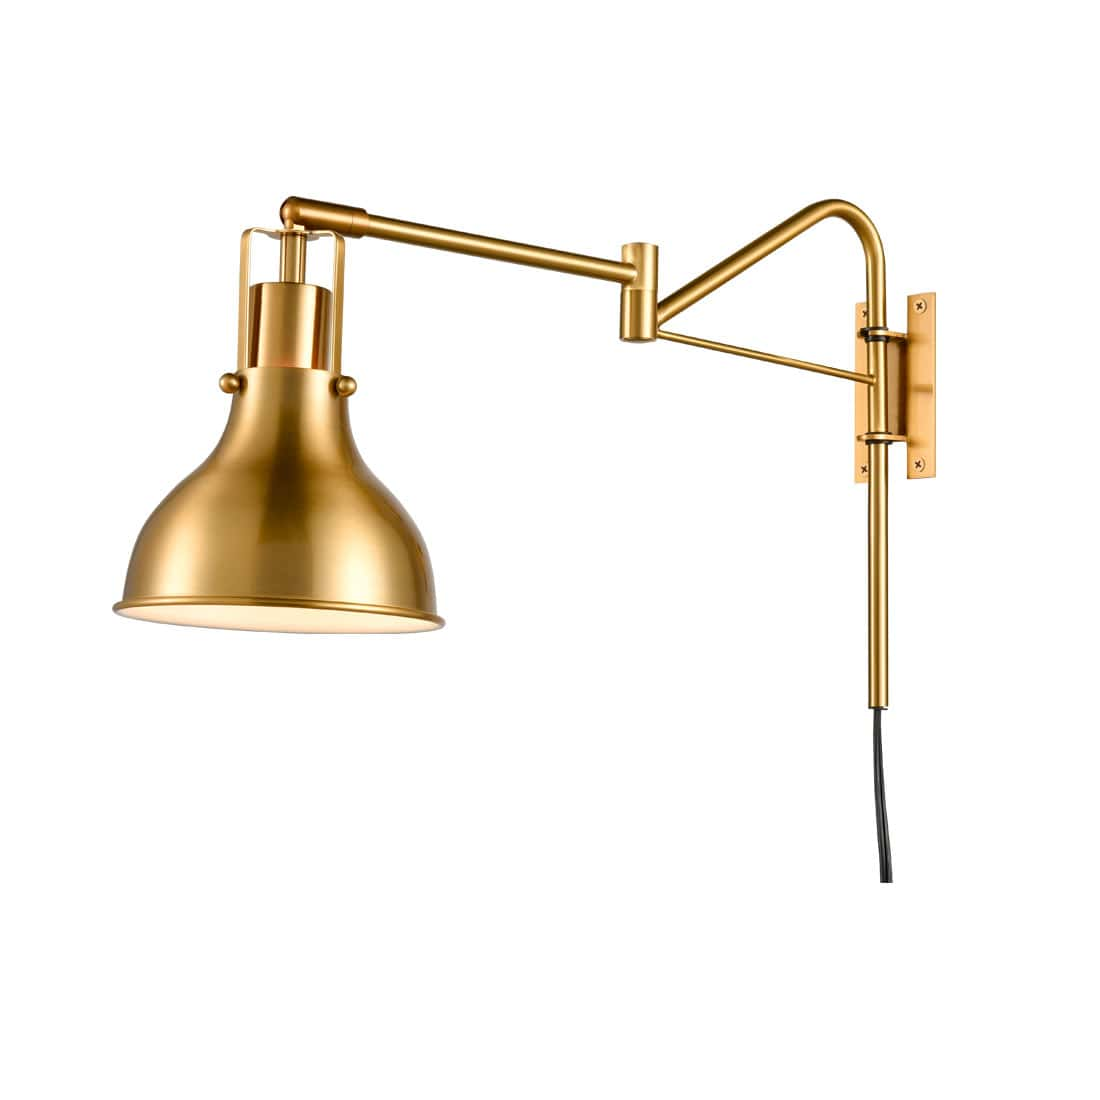 Swing Arm Bedside Reading Lamp Plug-in Wall Light Brass